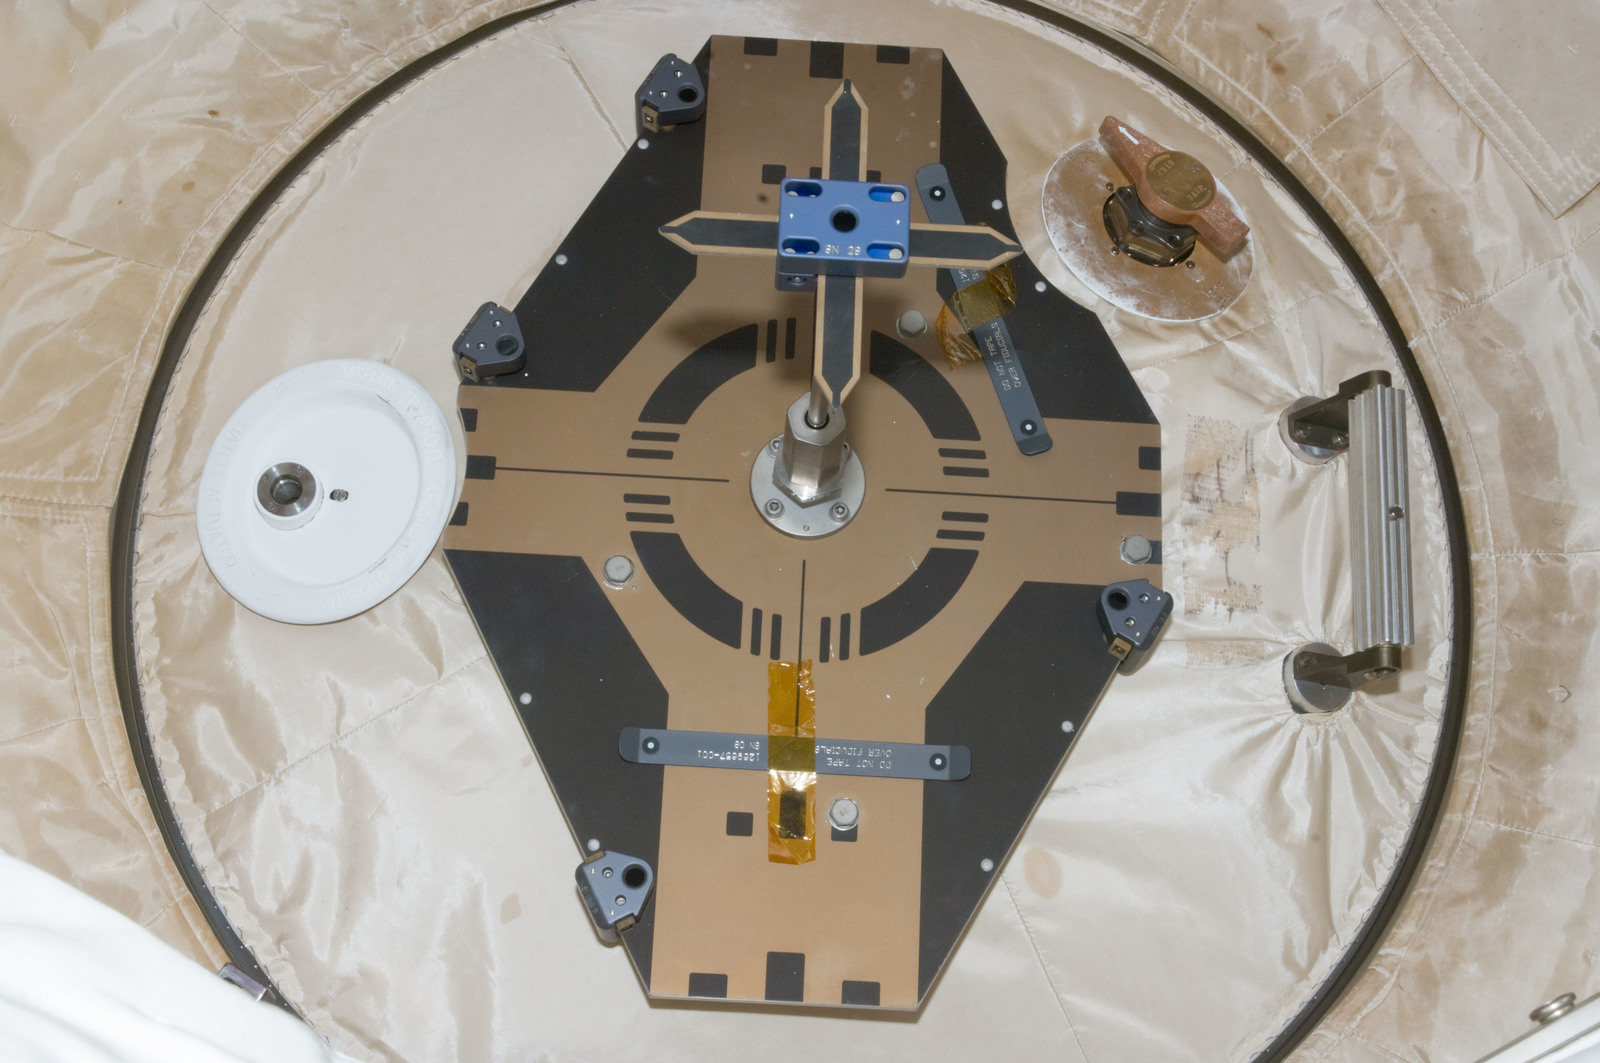 S134E009883 - STS-134 - Close-up view of Docking Target